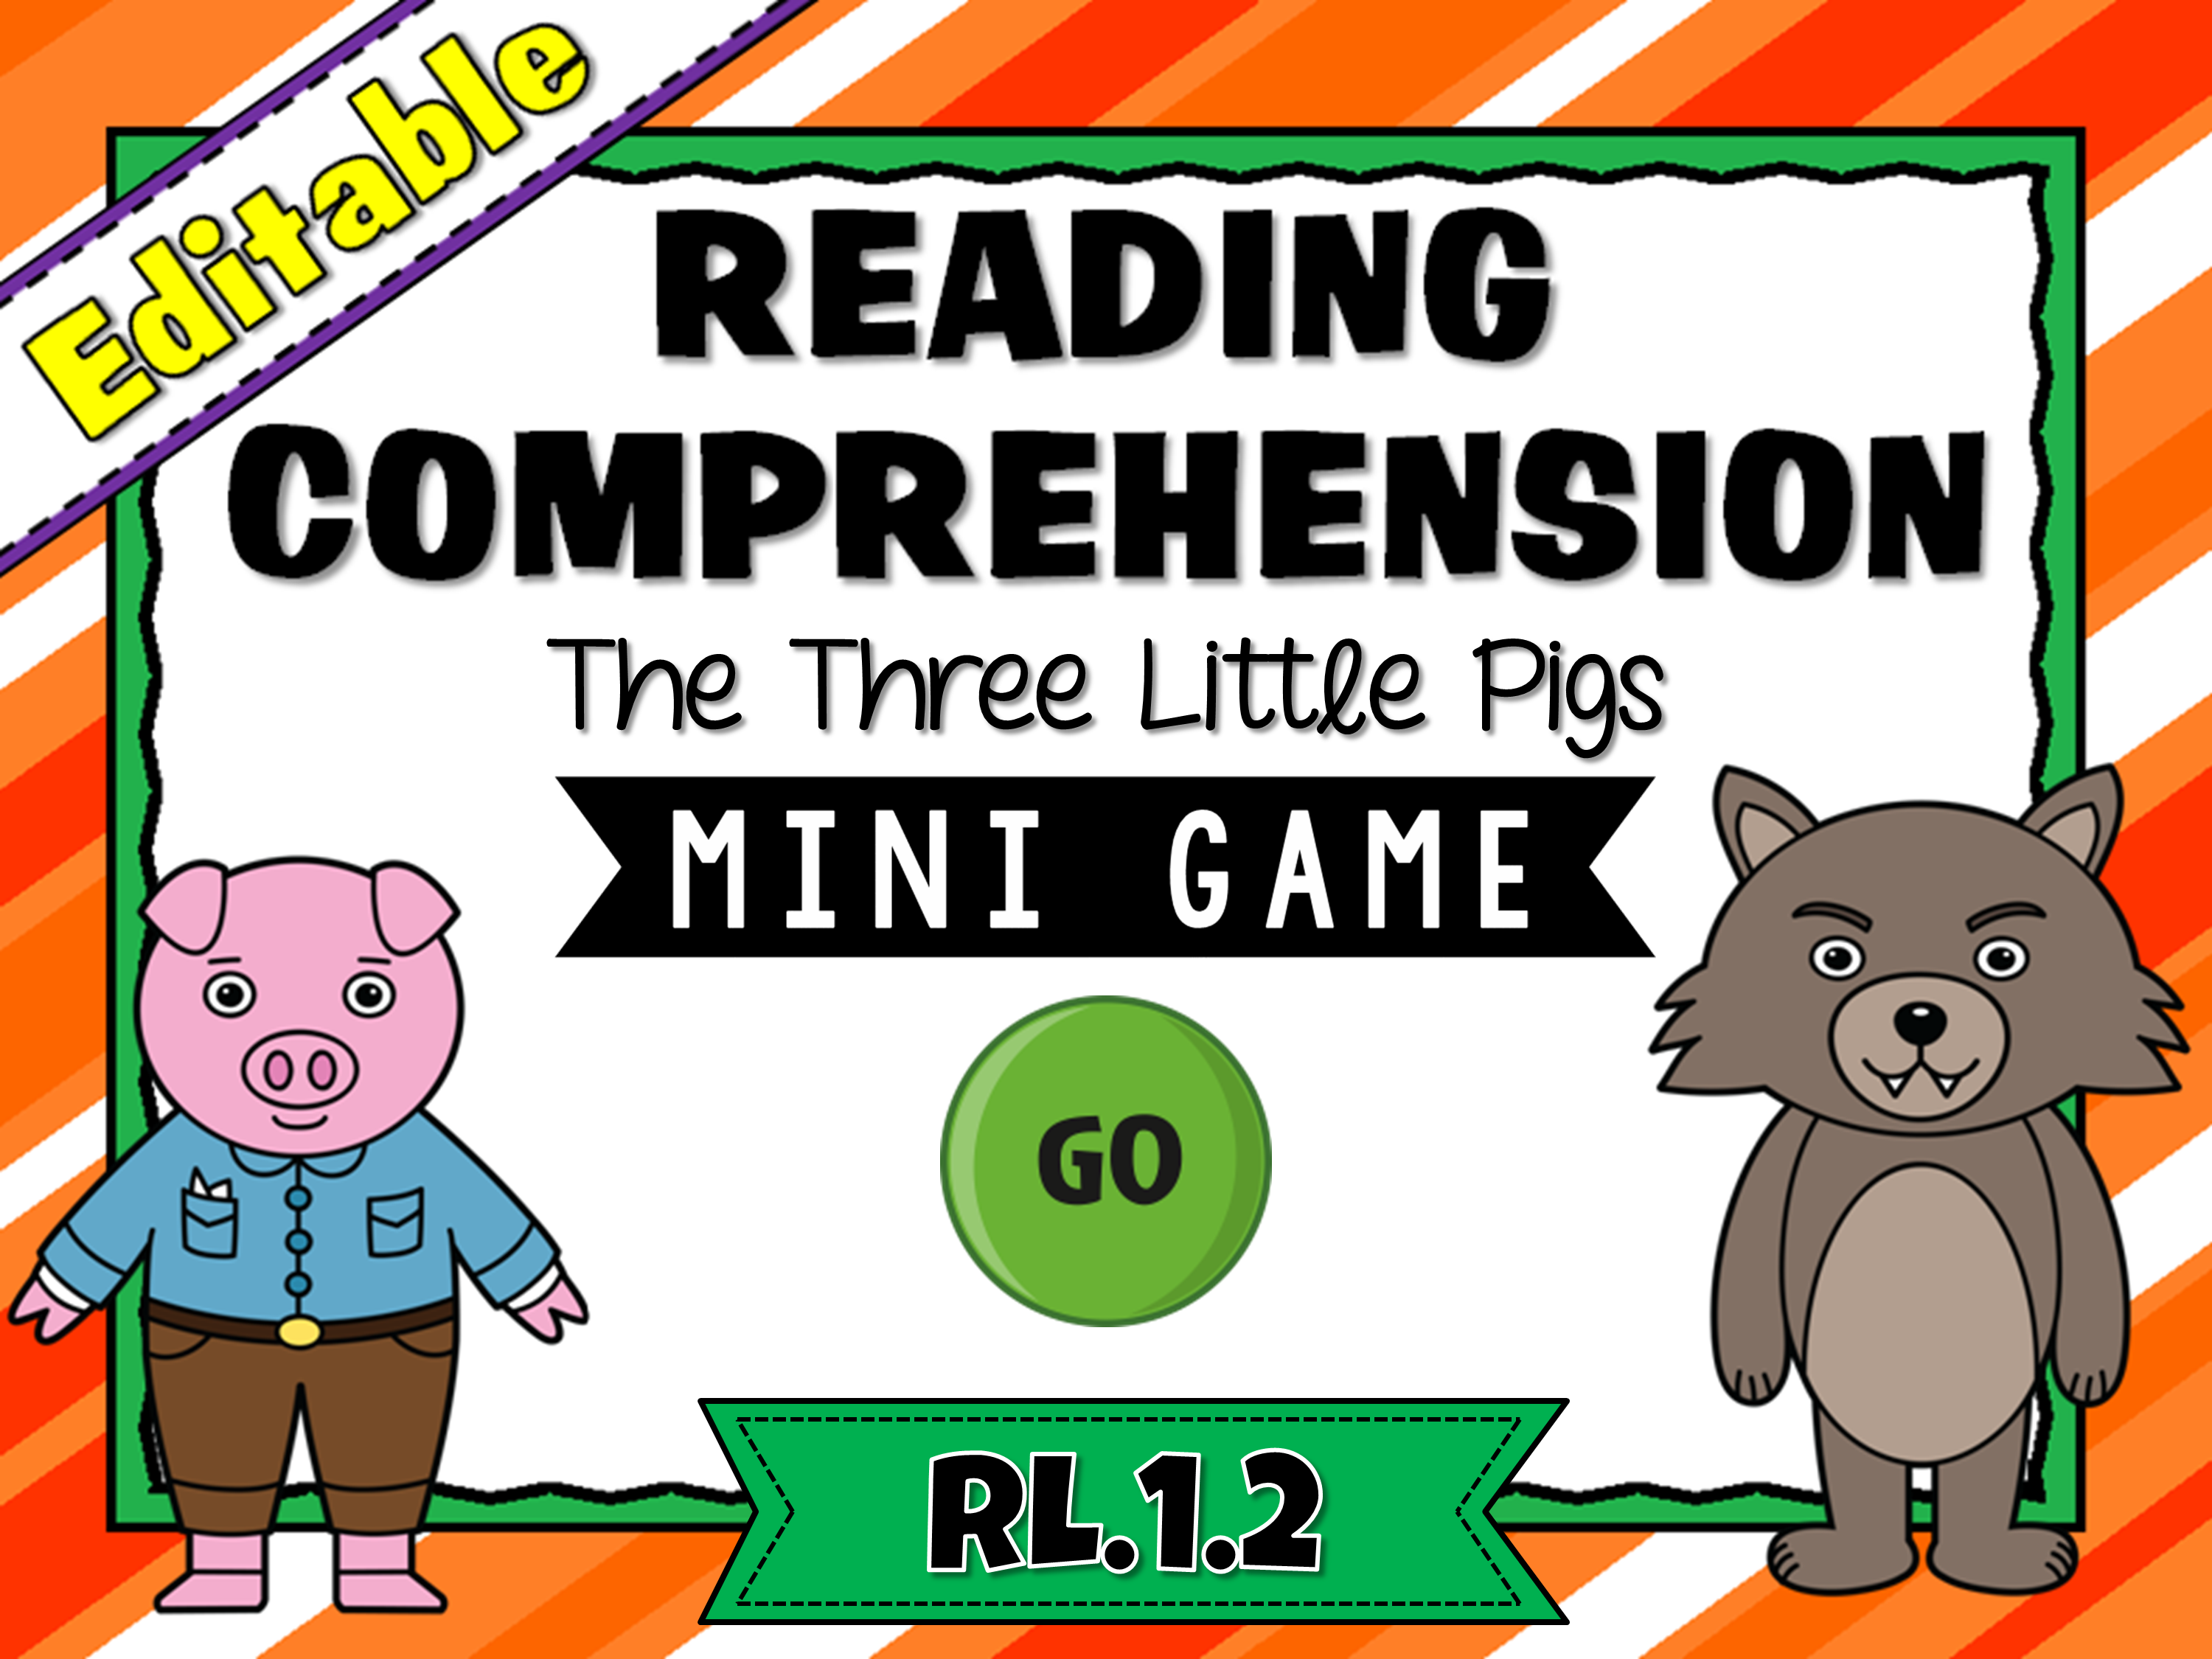 Reading Comprehension - The Three Little Pigs - Mini Game